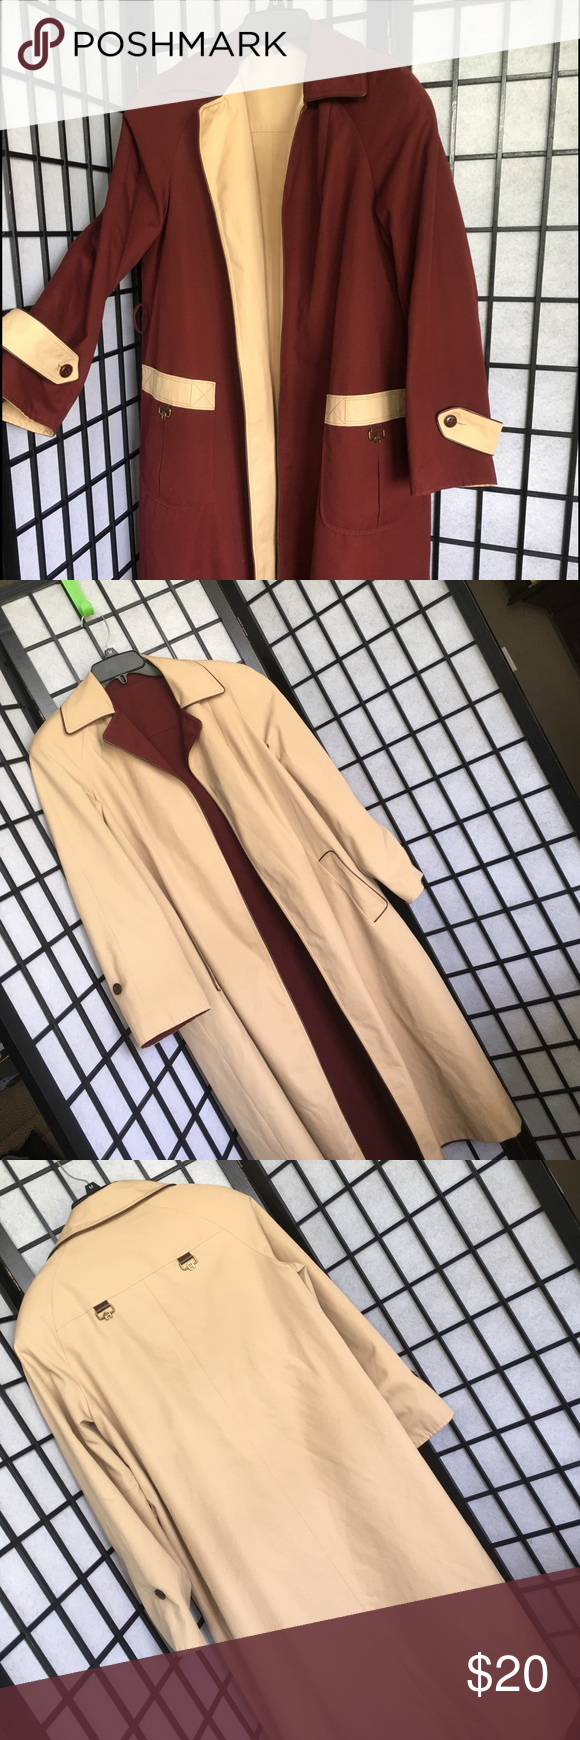 Vintage - Reversible All Weather Coat Reversible All Weather Coat. Burgundy & Cream/Tan.  Great Condition! Etienne Aigner Jackets & Coats